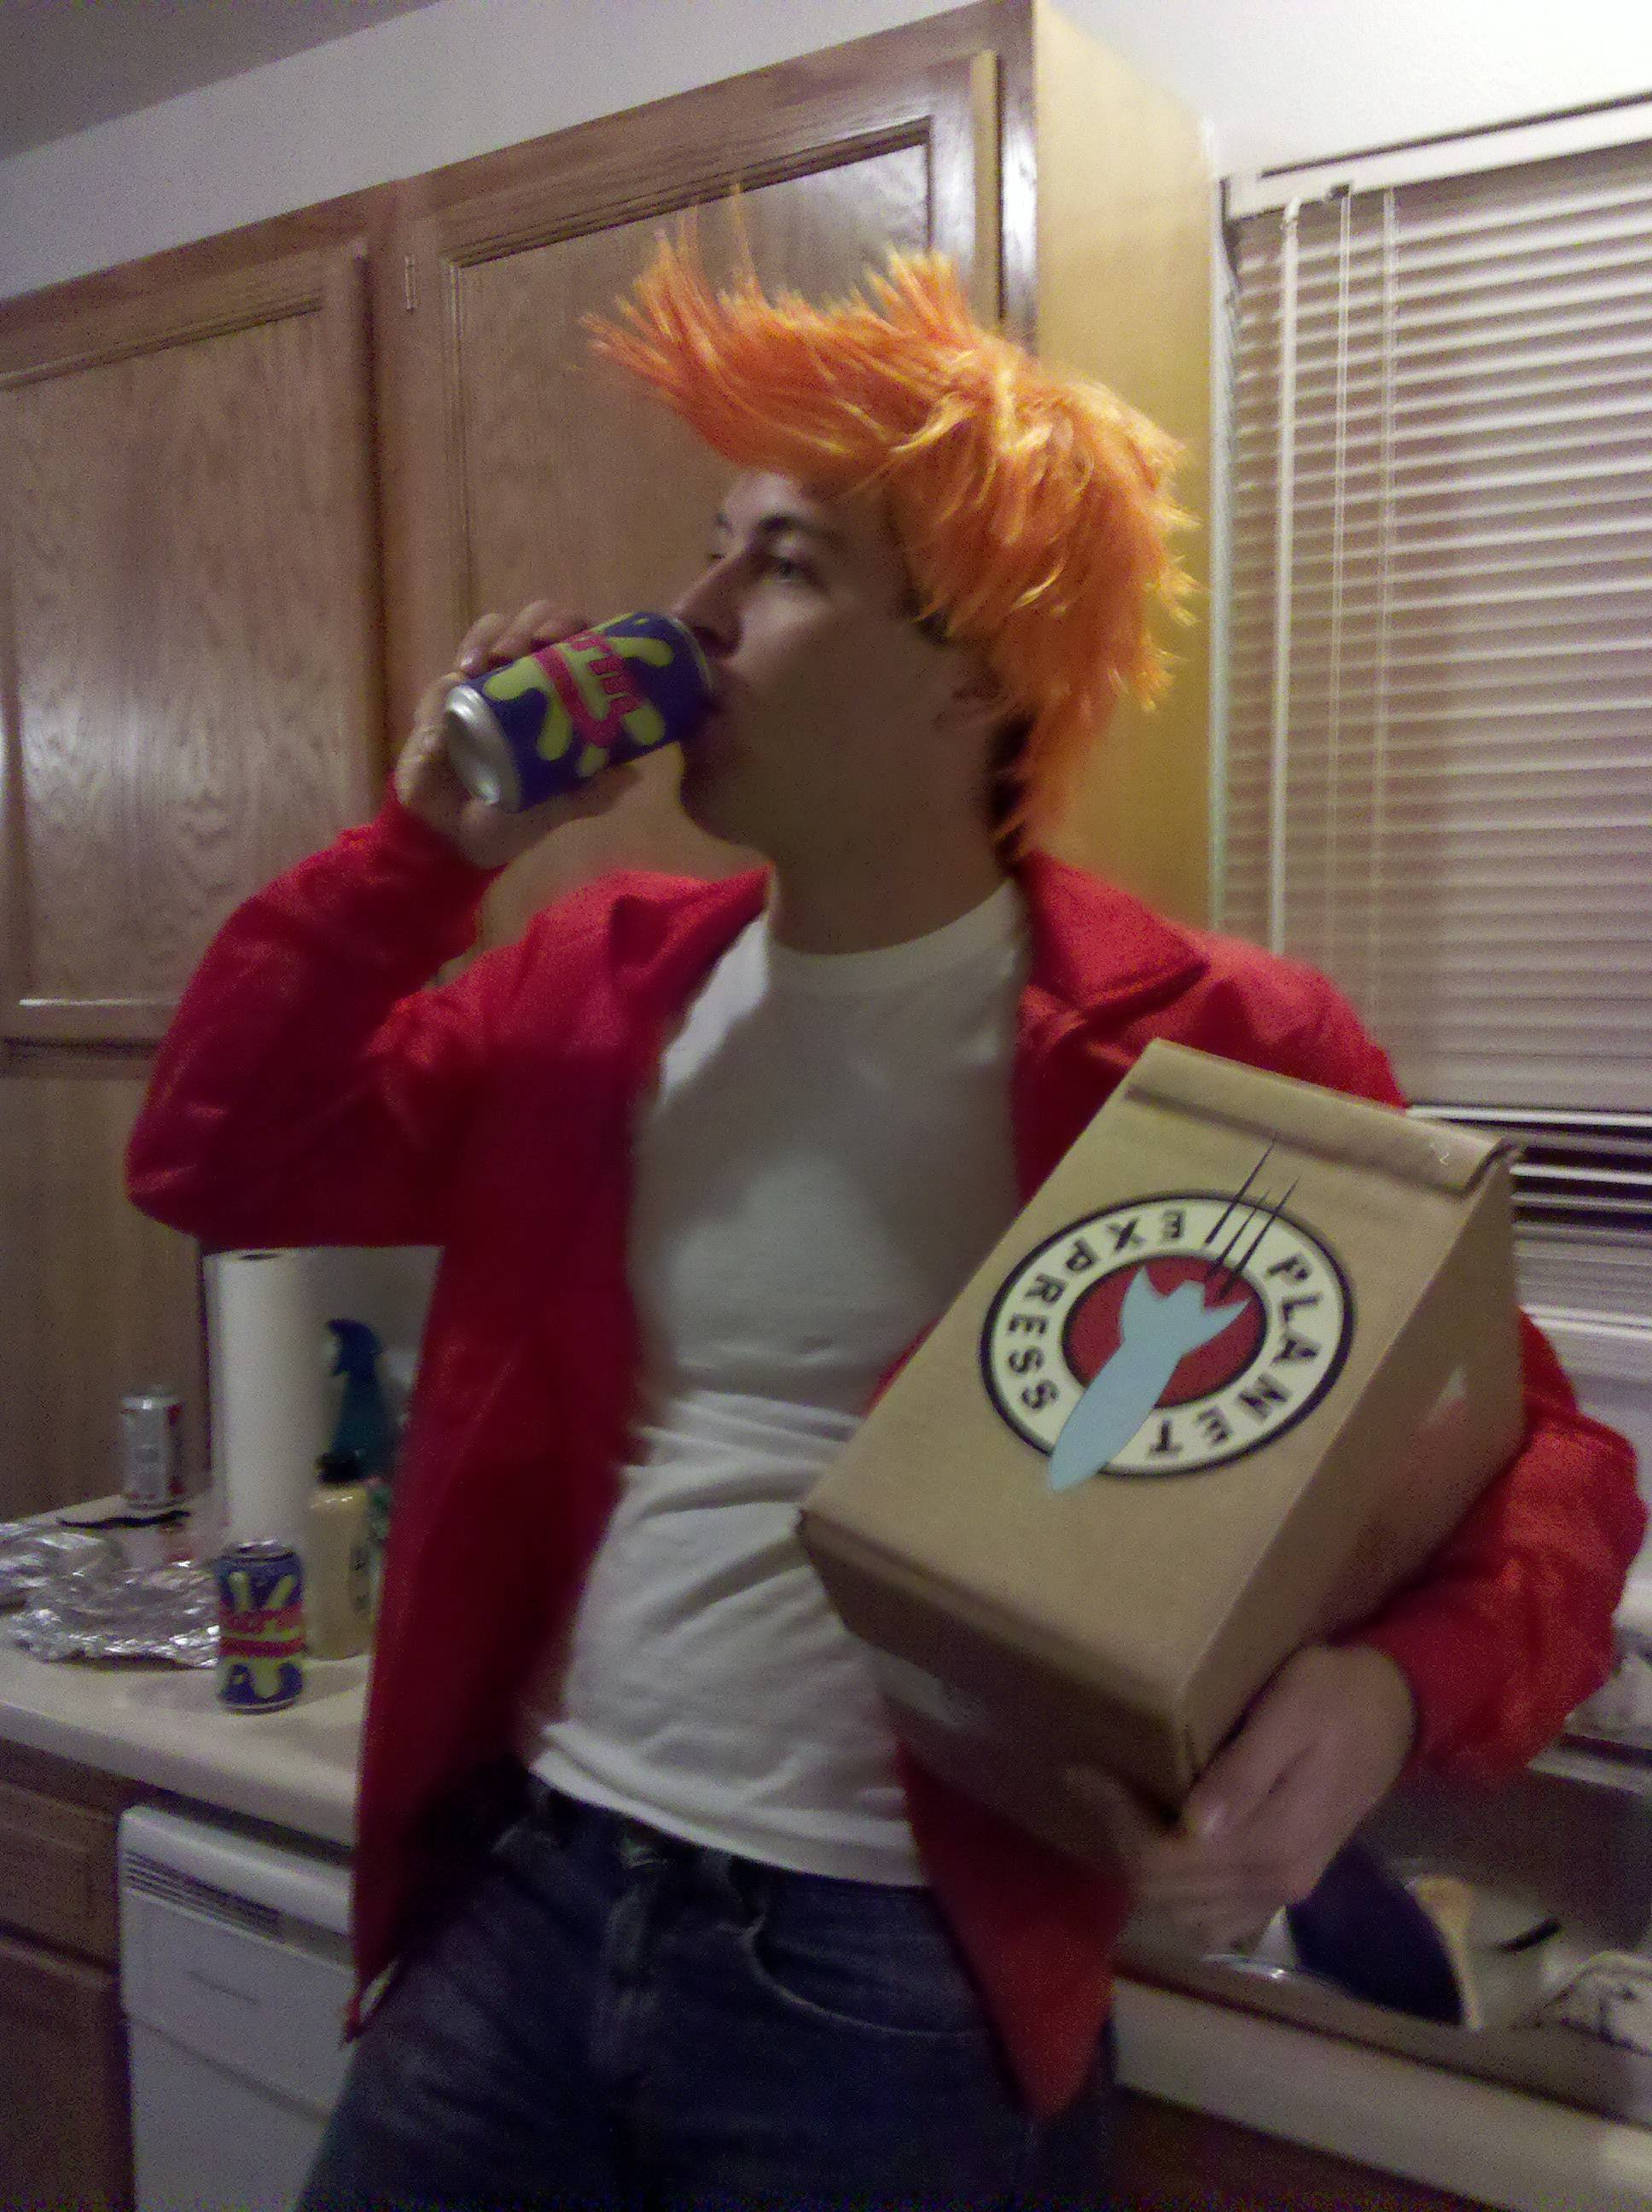 Halloween Costumes 2010 - Best Of The Internet